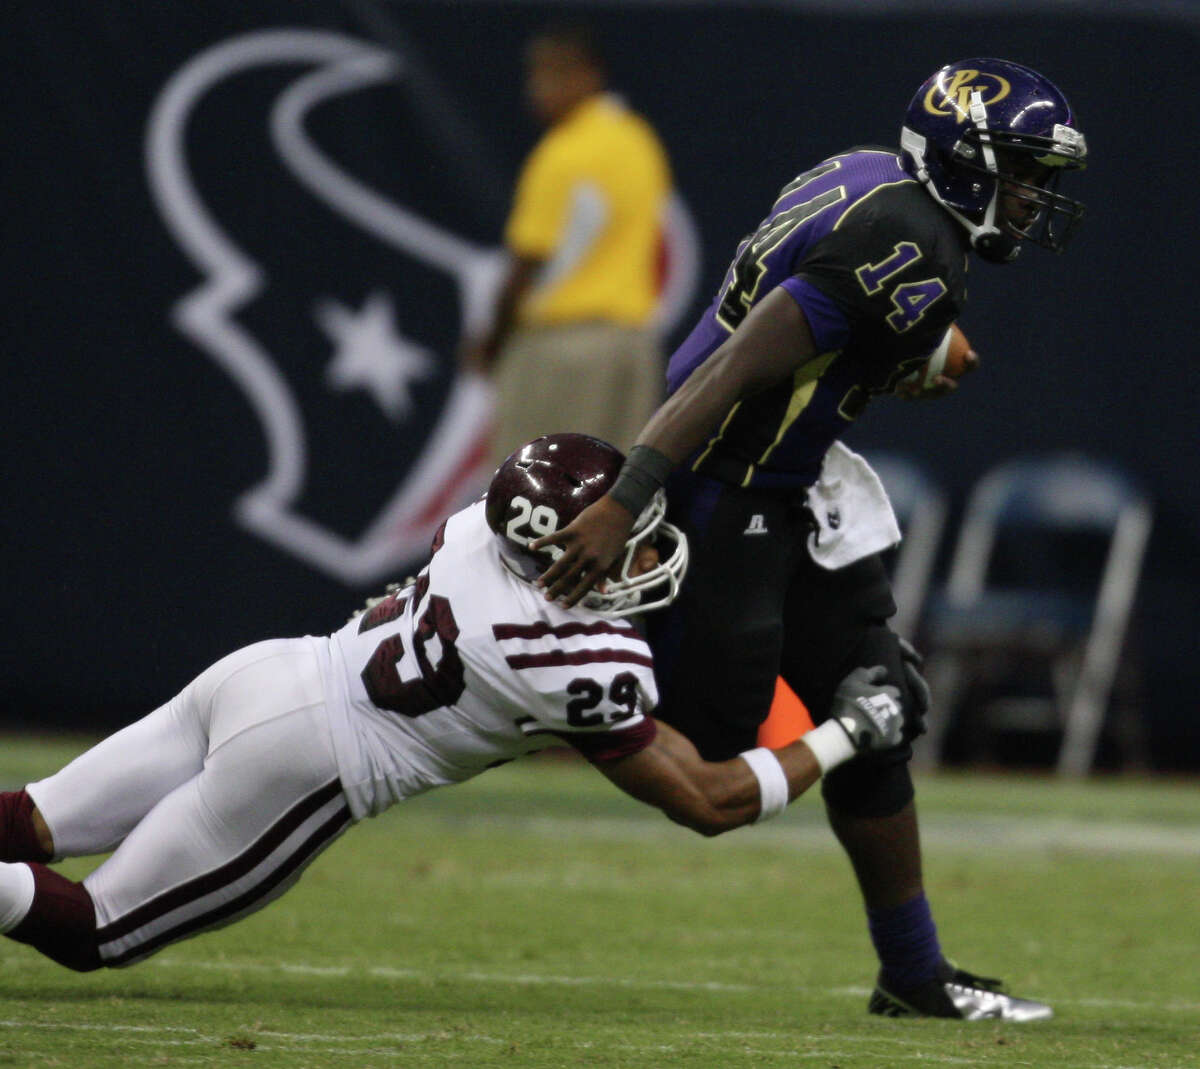 Prairie View quarterback De'Auntre Smiley (14) is sacked by Texas Southern's Le'Tevin Wilcox during the first half of the Labor Day Classic, Saturday, September 1, 2012 at Reliant Stadium in Houston.